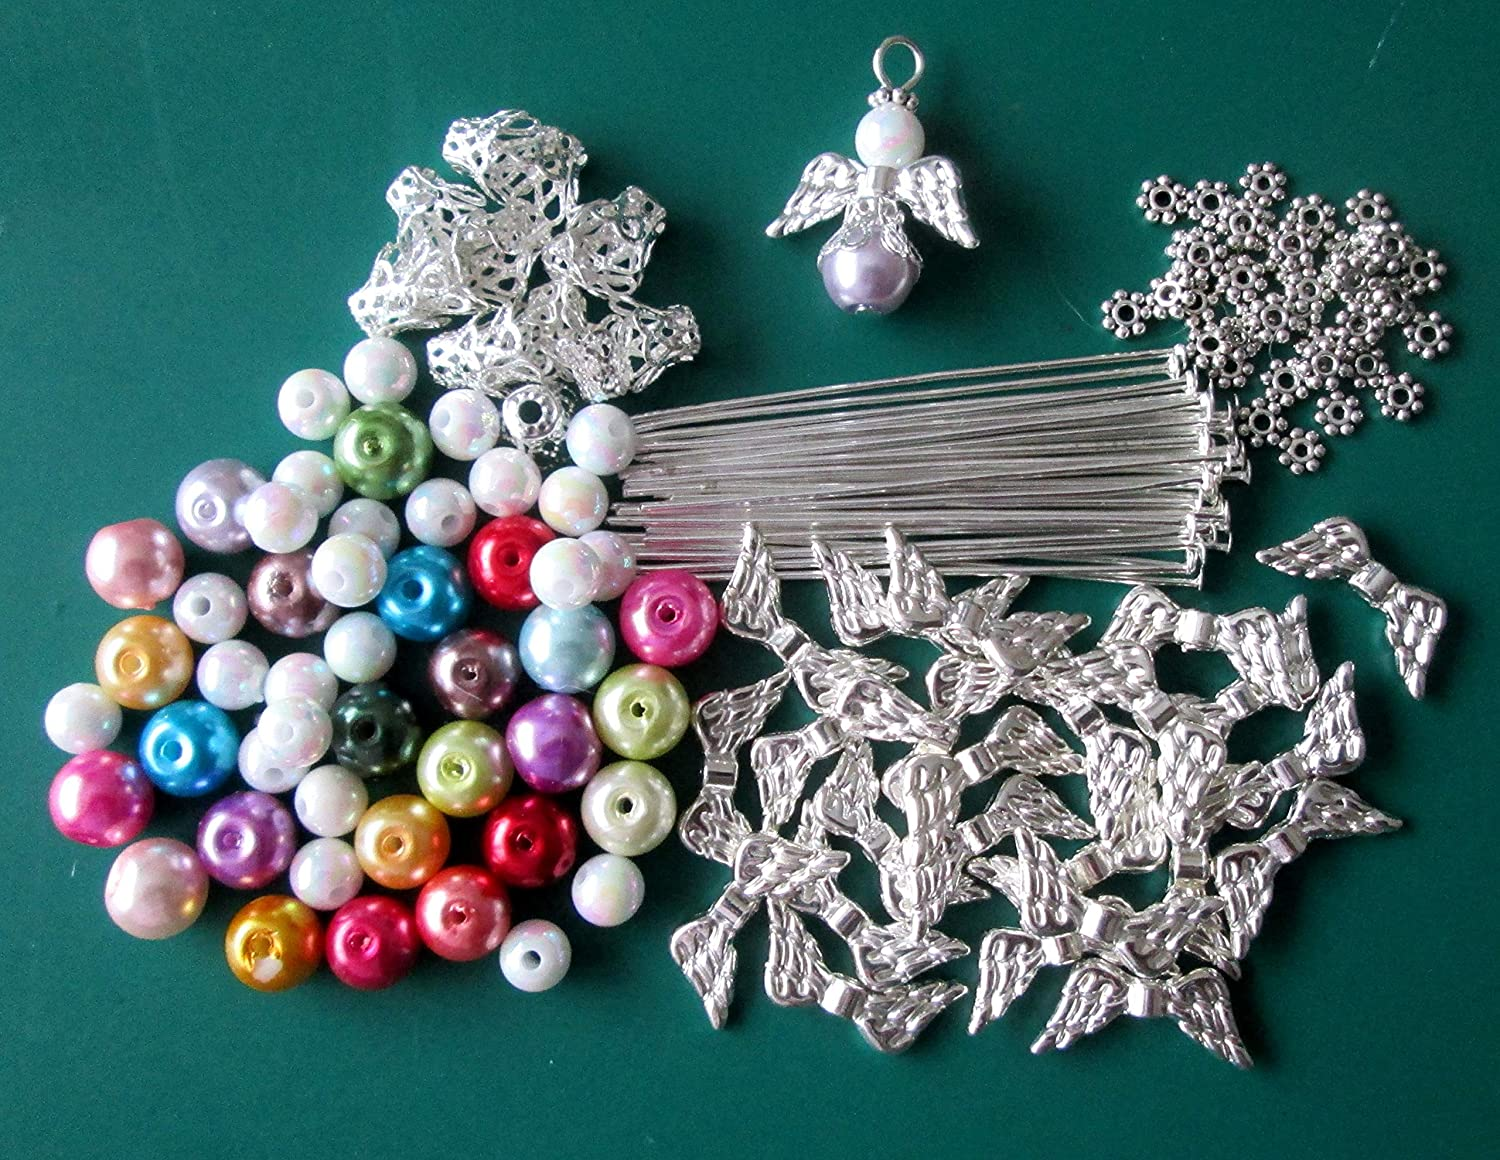 24 GLASS PEARL BEAD GUARDIAN ANGELS//FAIRY CHARMS//WINGS DIY KIT